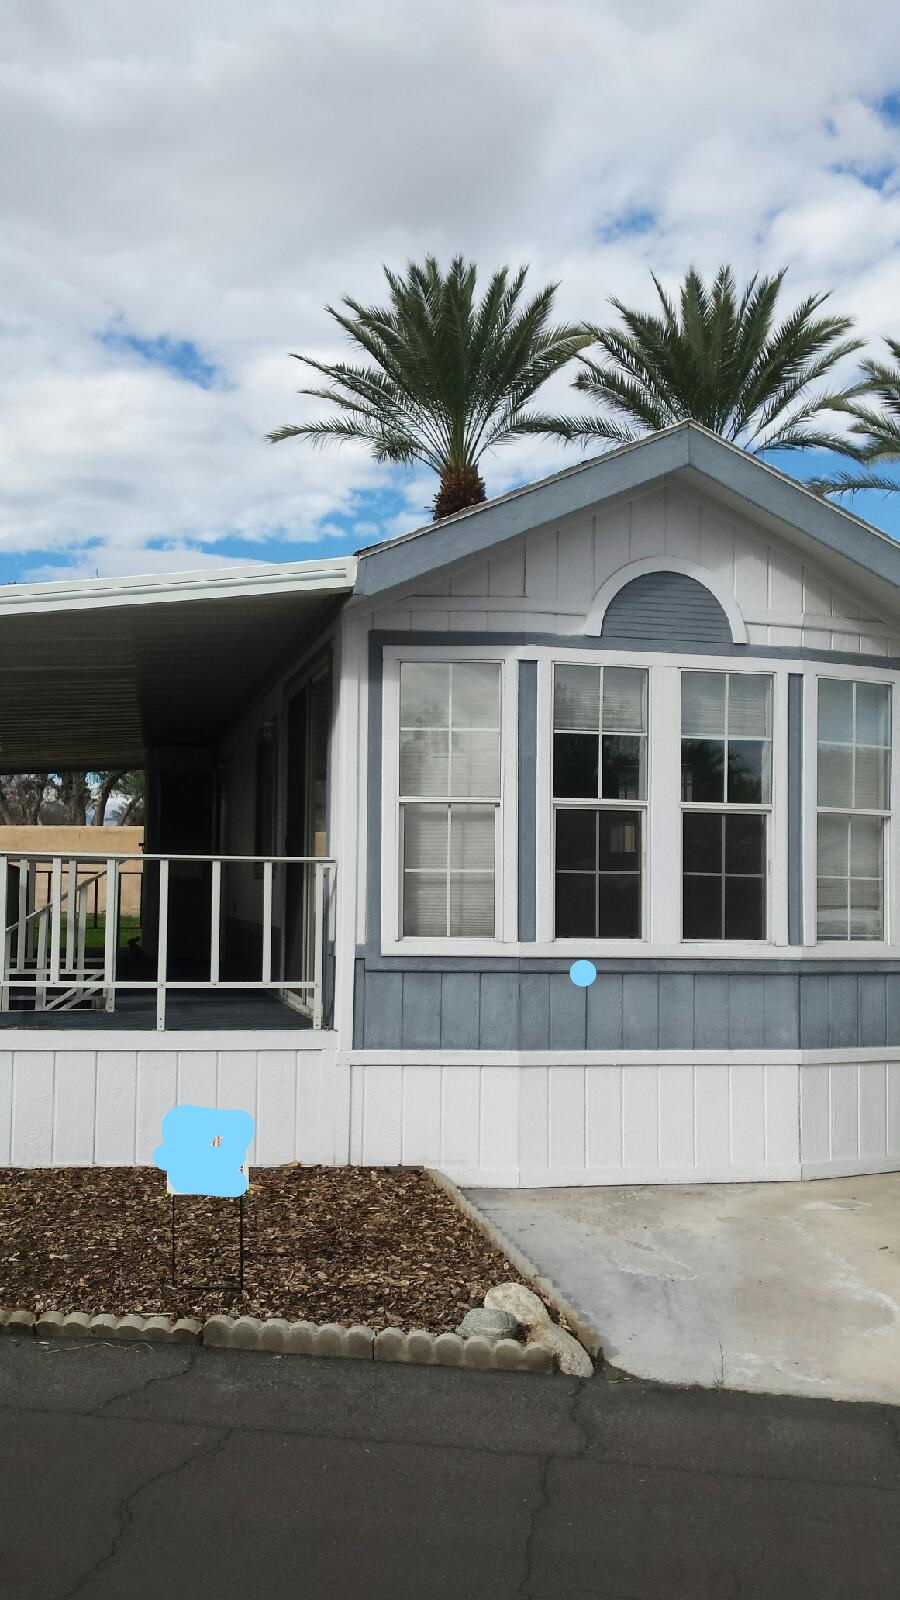 55 And Older Palm Springs Cottage For Sale